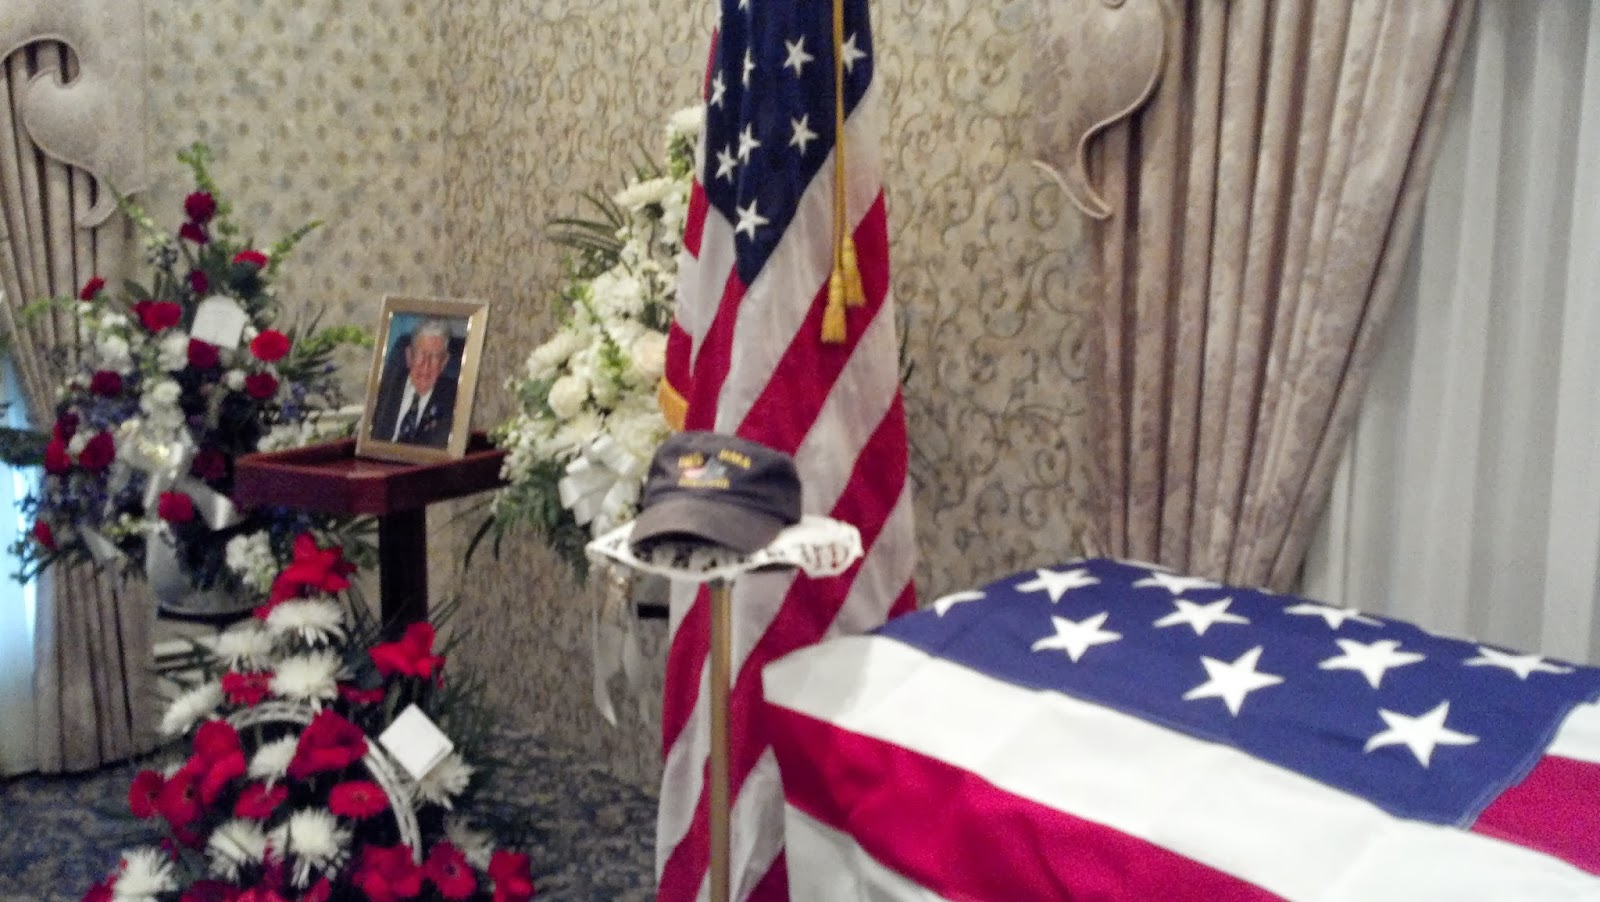 Jerry's coffin at the funeral home in 2012